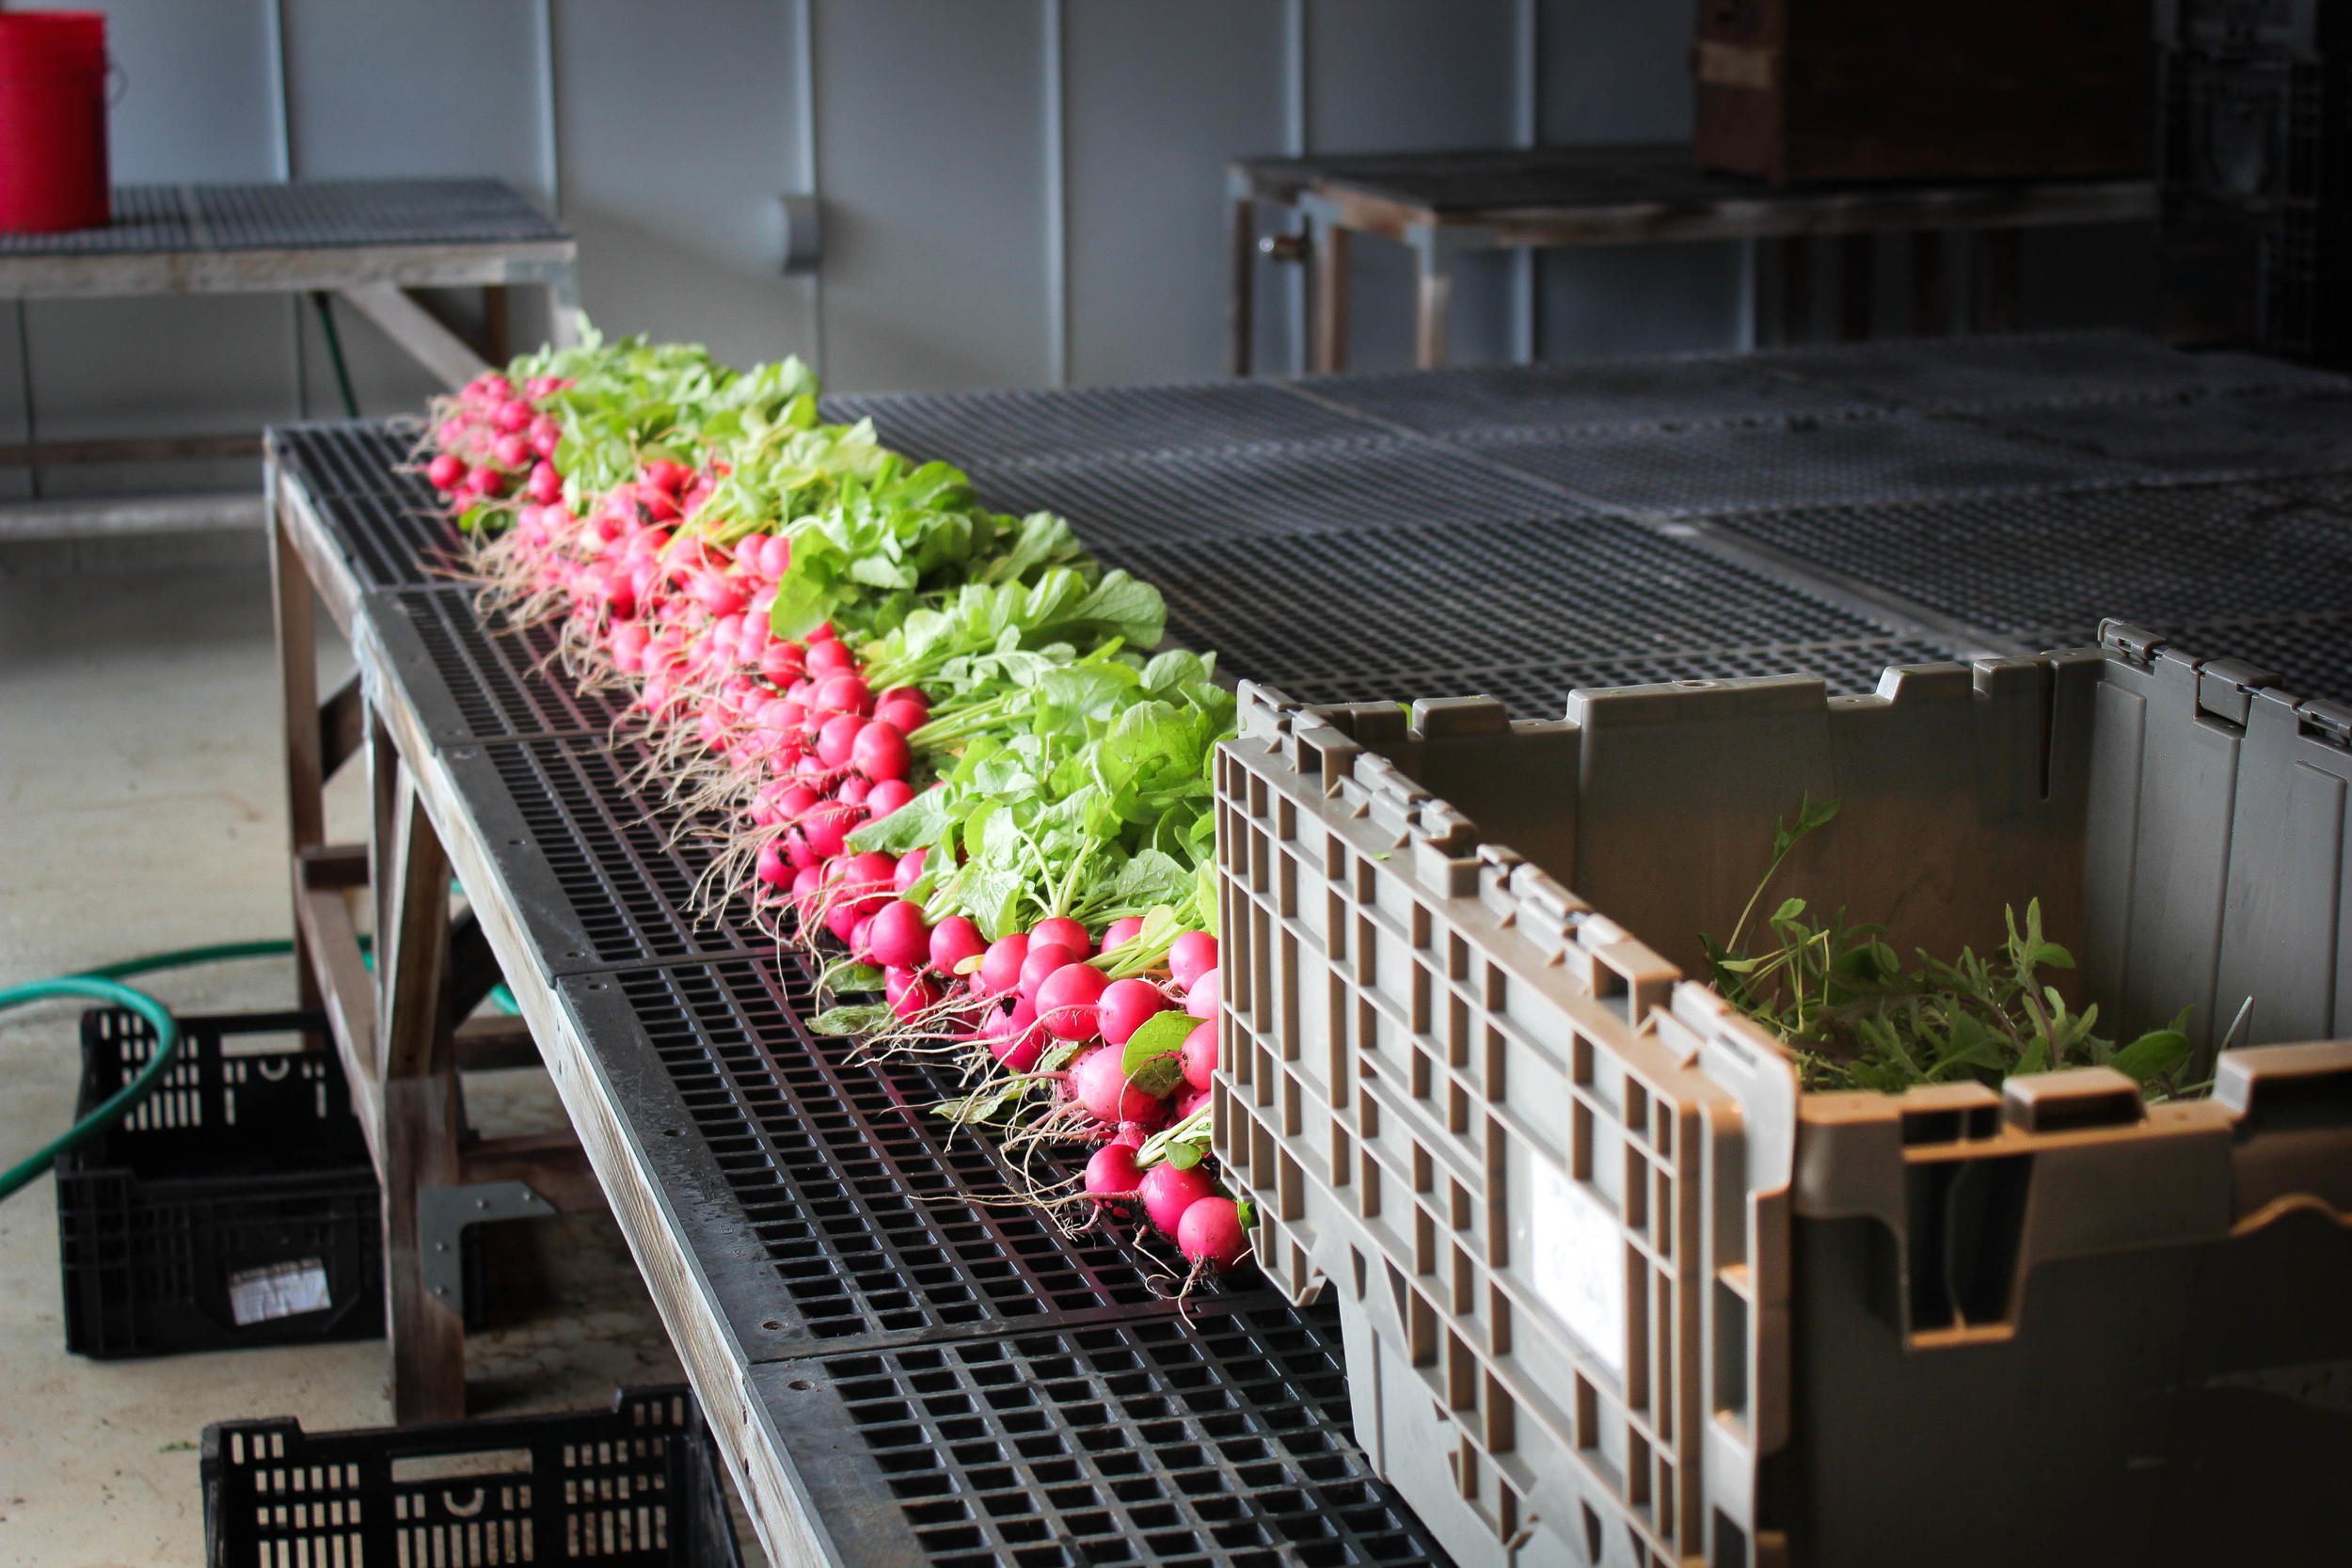 radish washing station-1.jpg